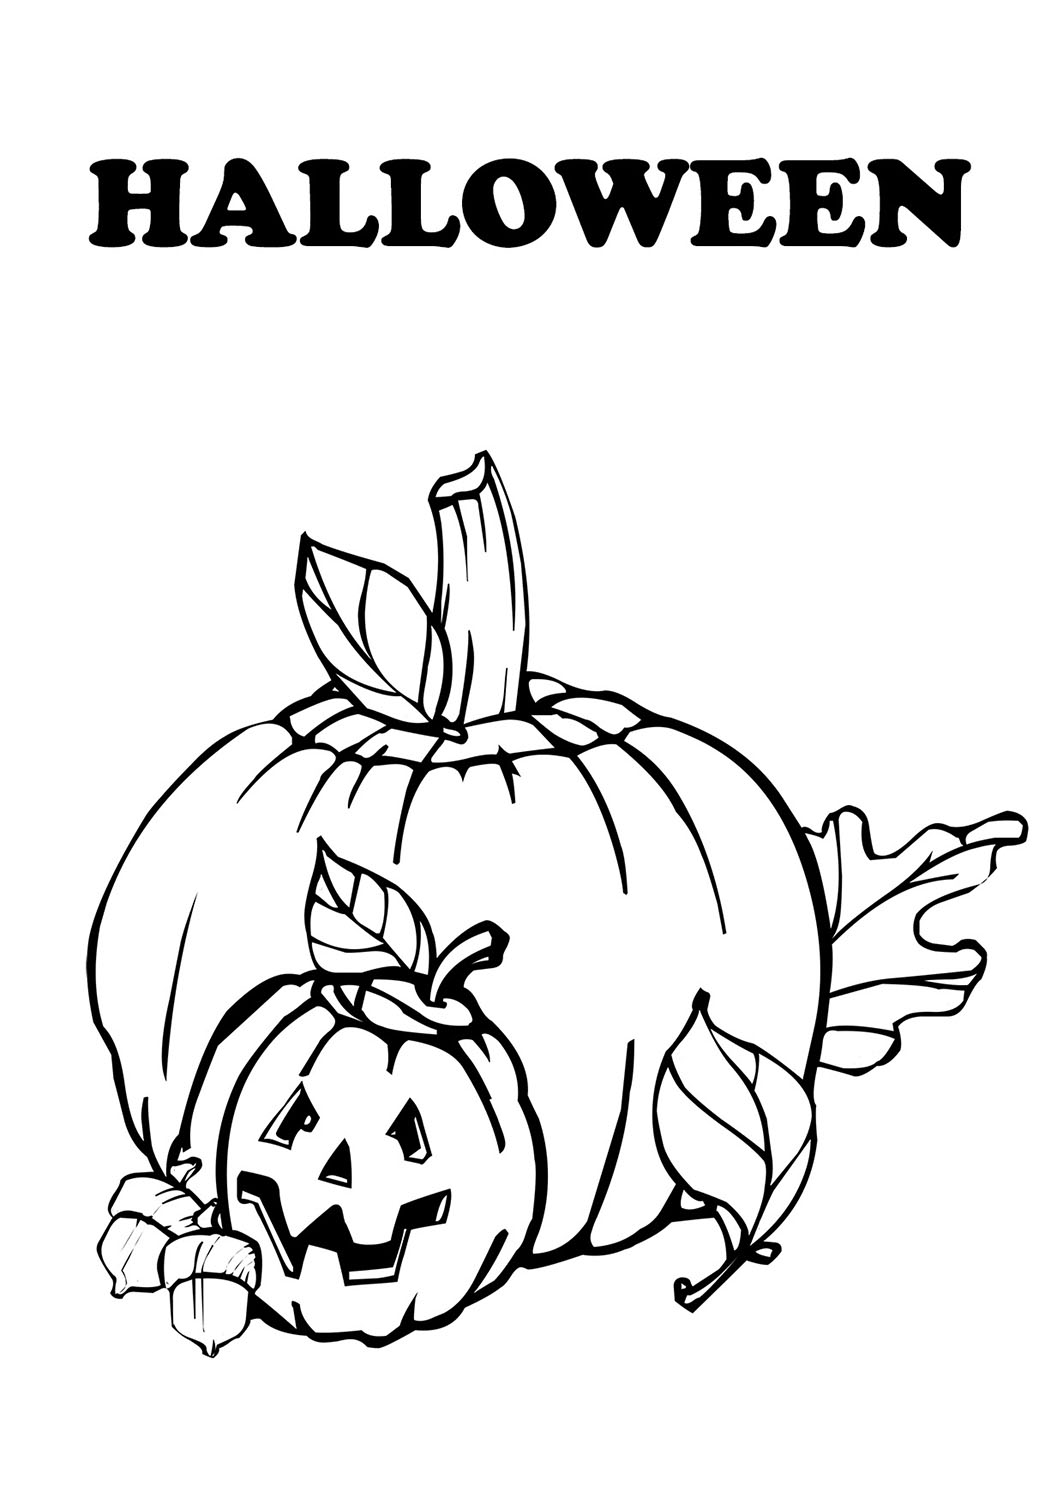 coloring page with carved pumpkins